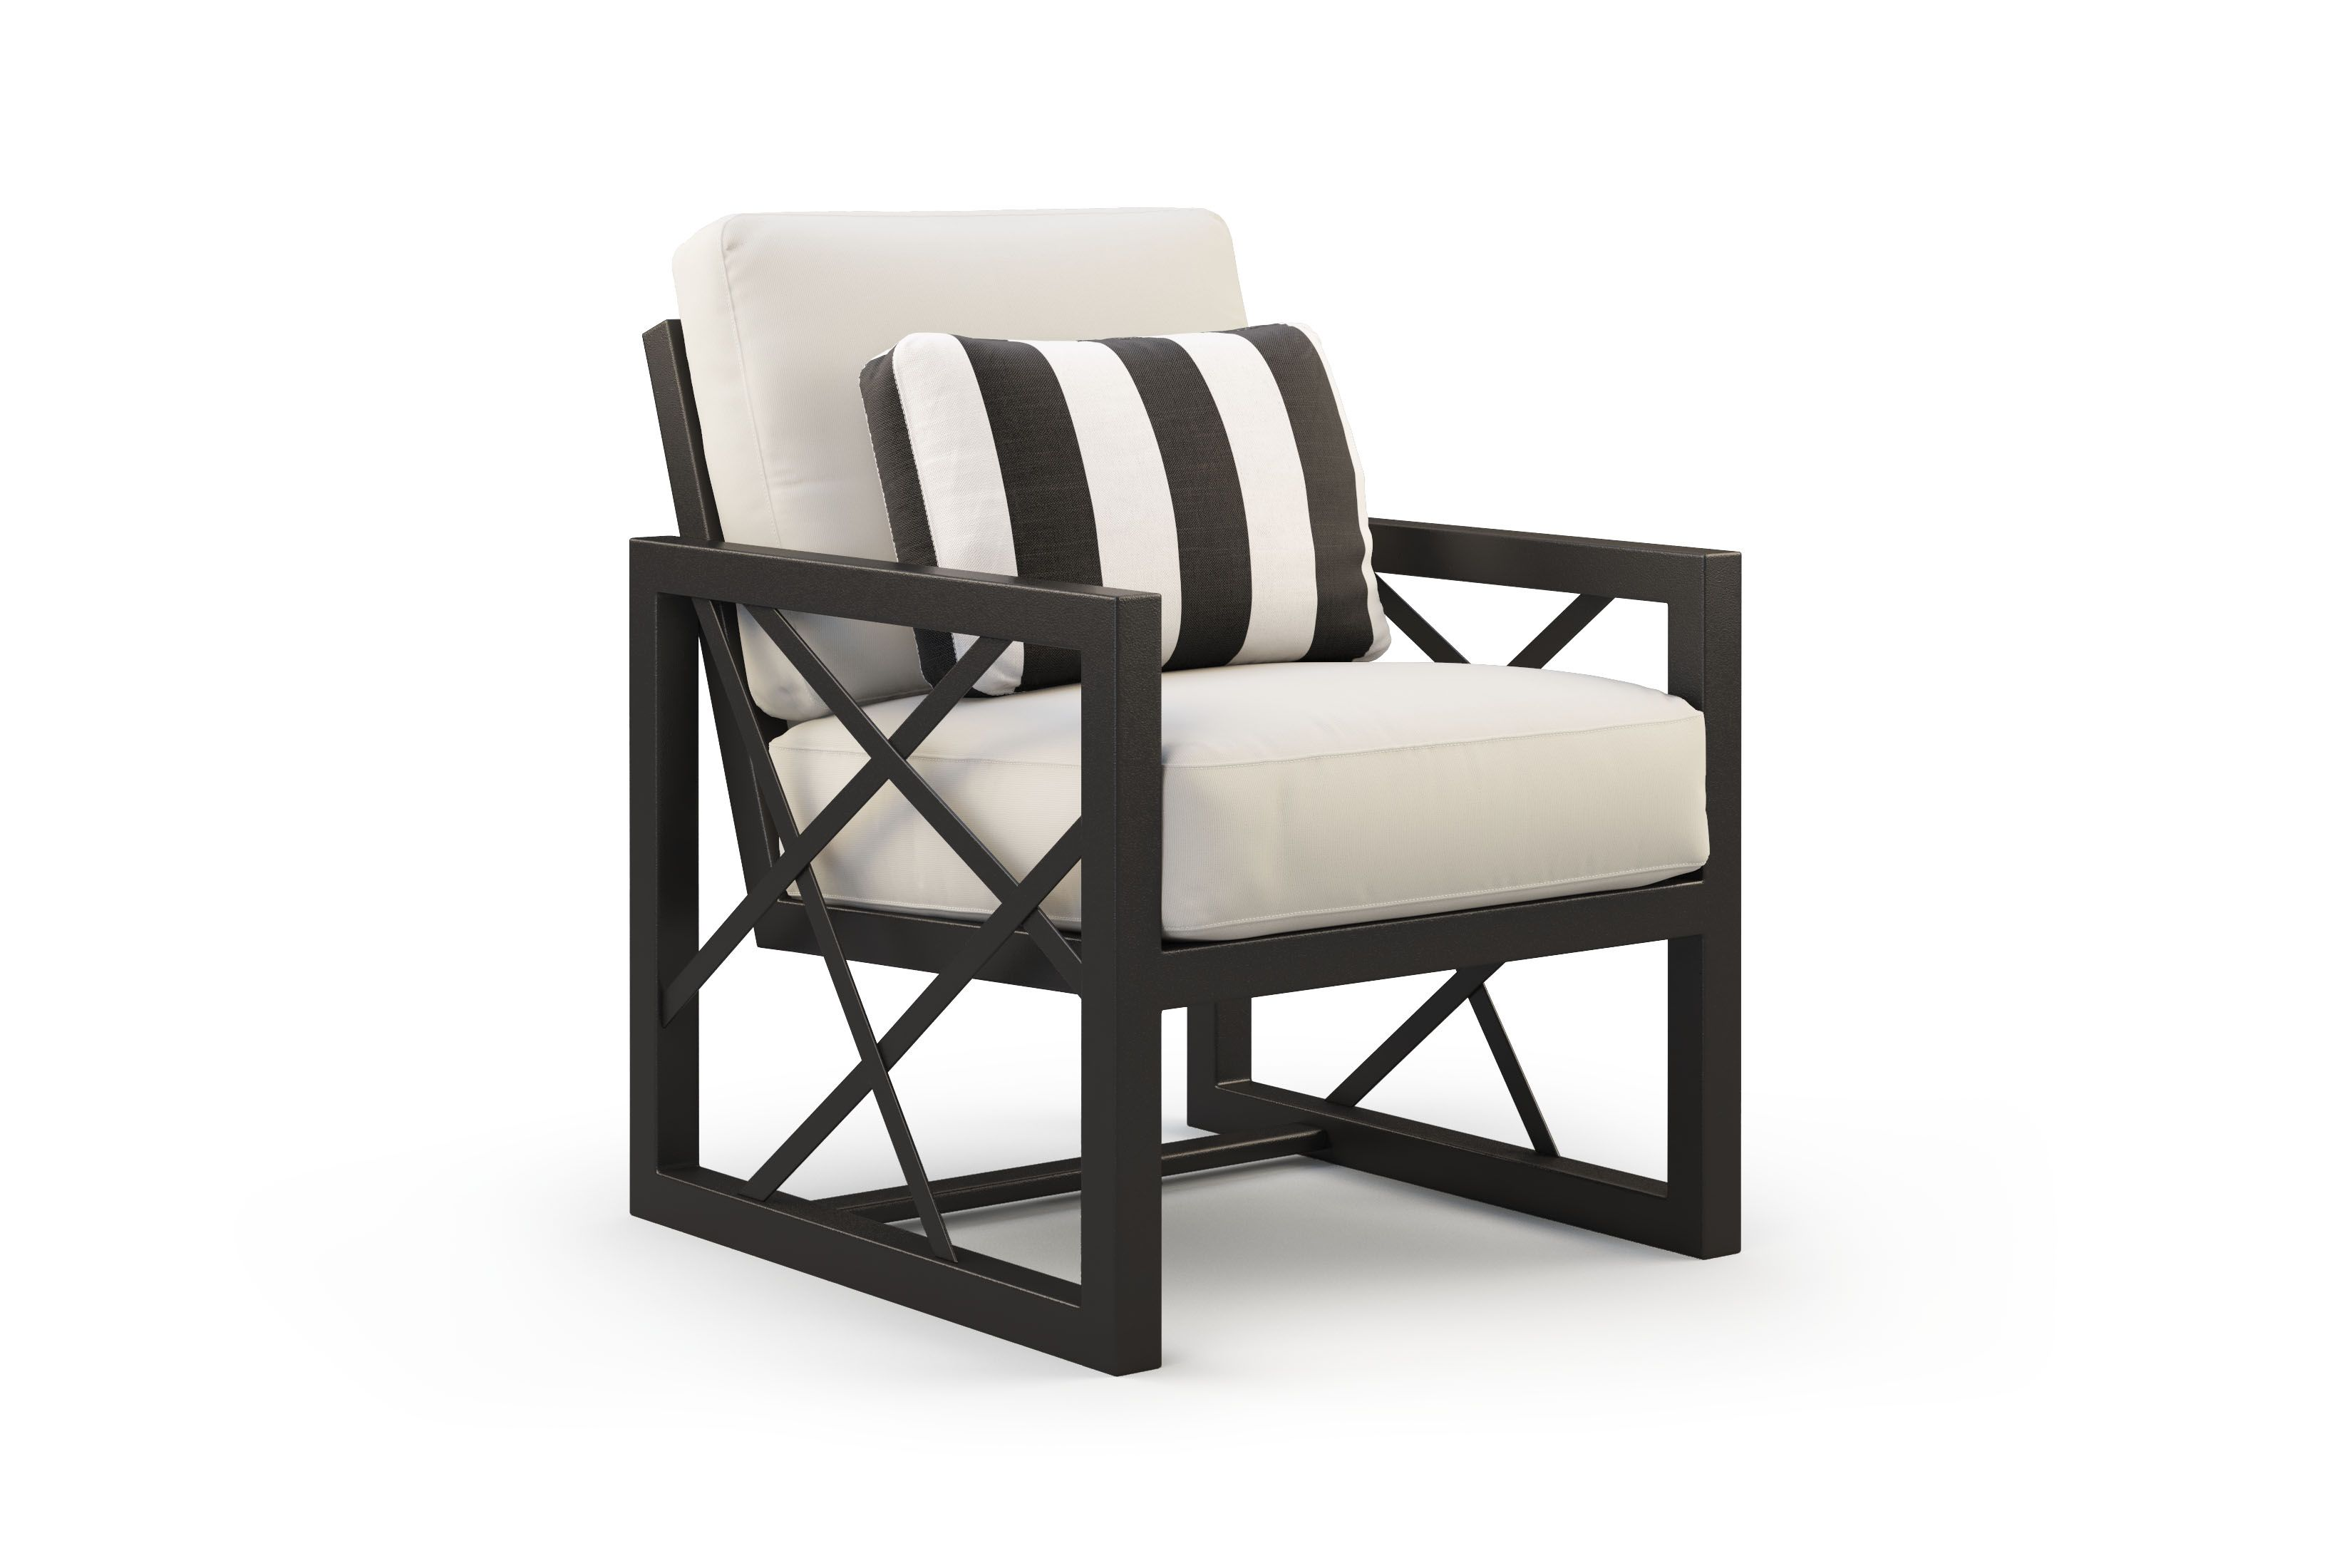 Palm Springs Cushioned Lounge Chair Industrial Design Furniture